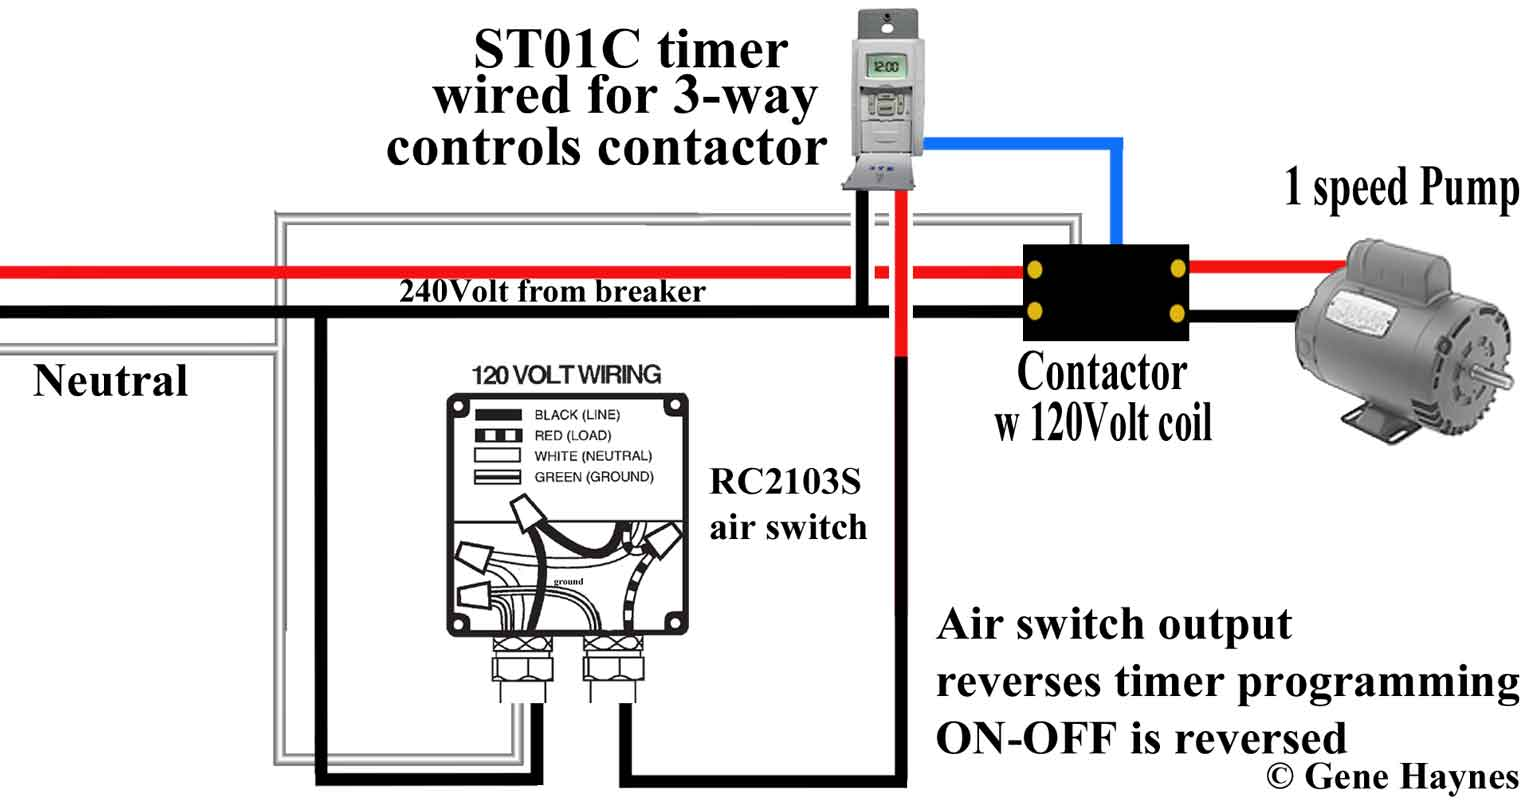 Use ST01C for 4-way timer · ST01 24 volt DC photoeye · Convert single-pole  switch into 3-way switch using ST01/ How to add a switch